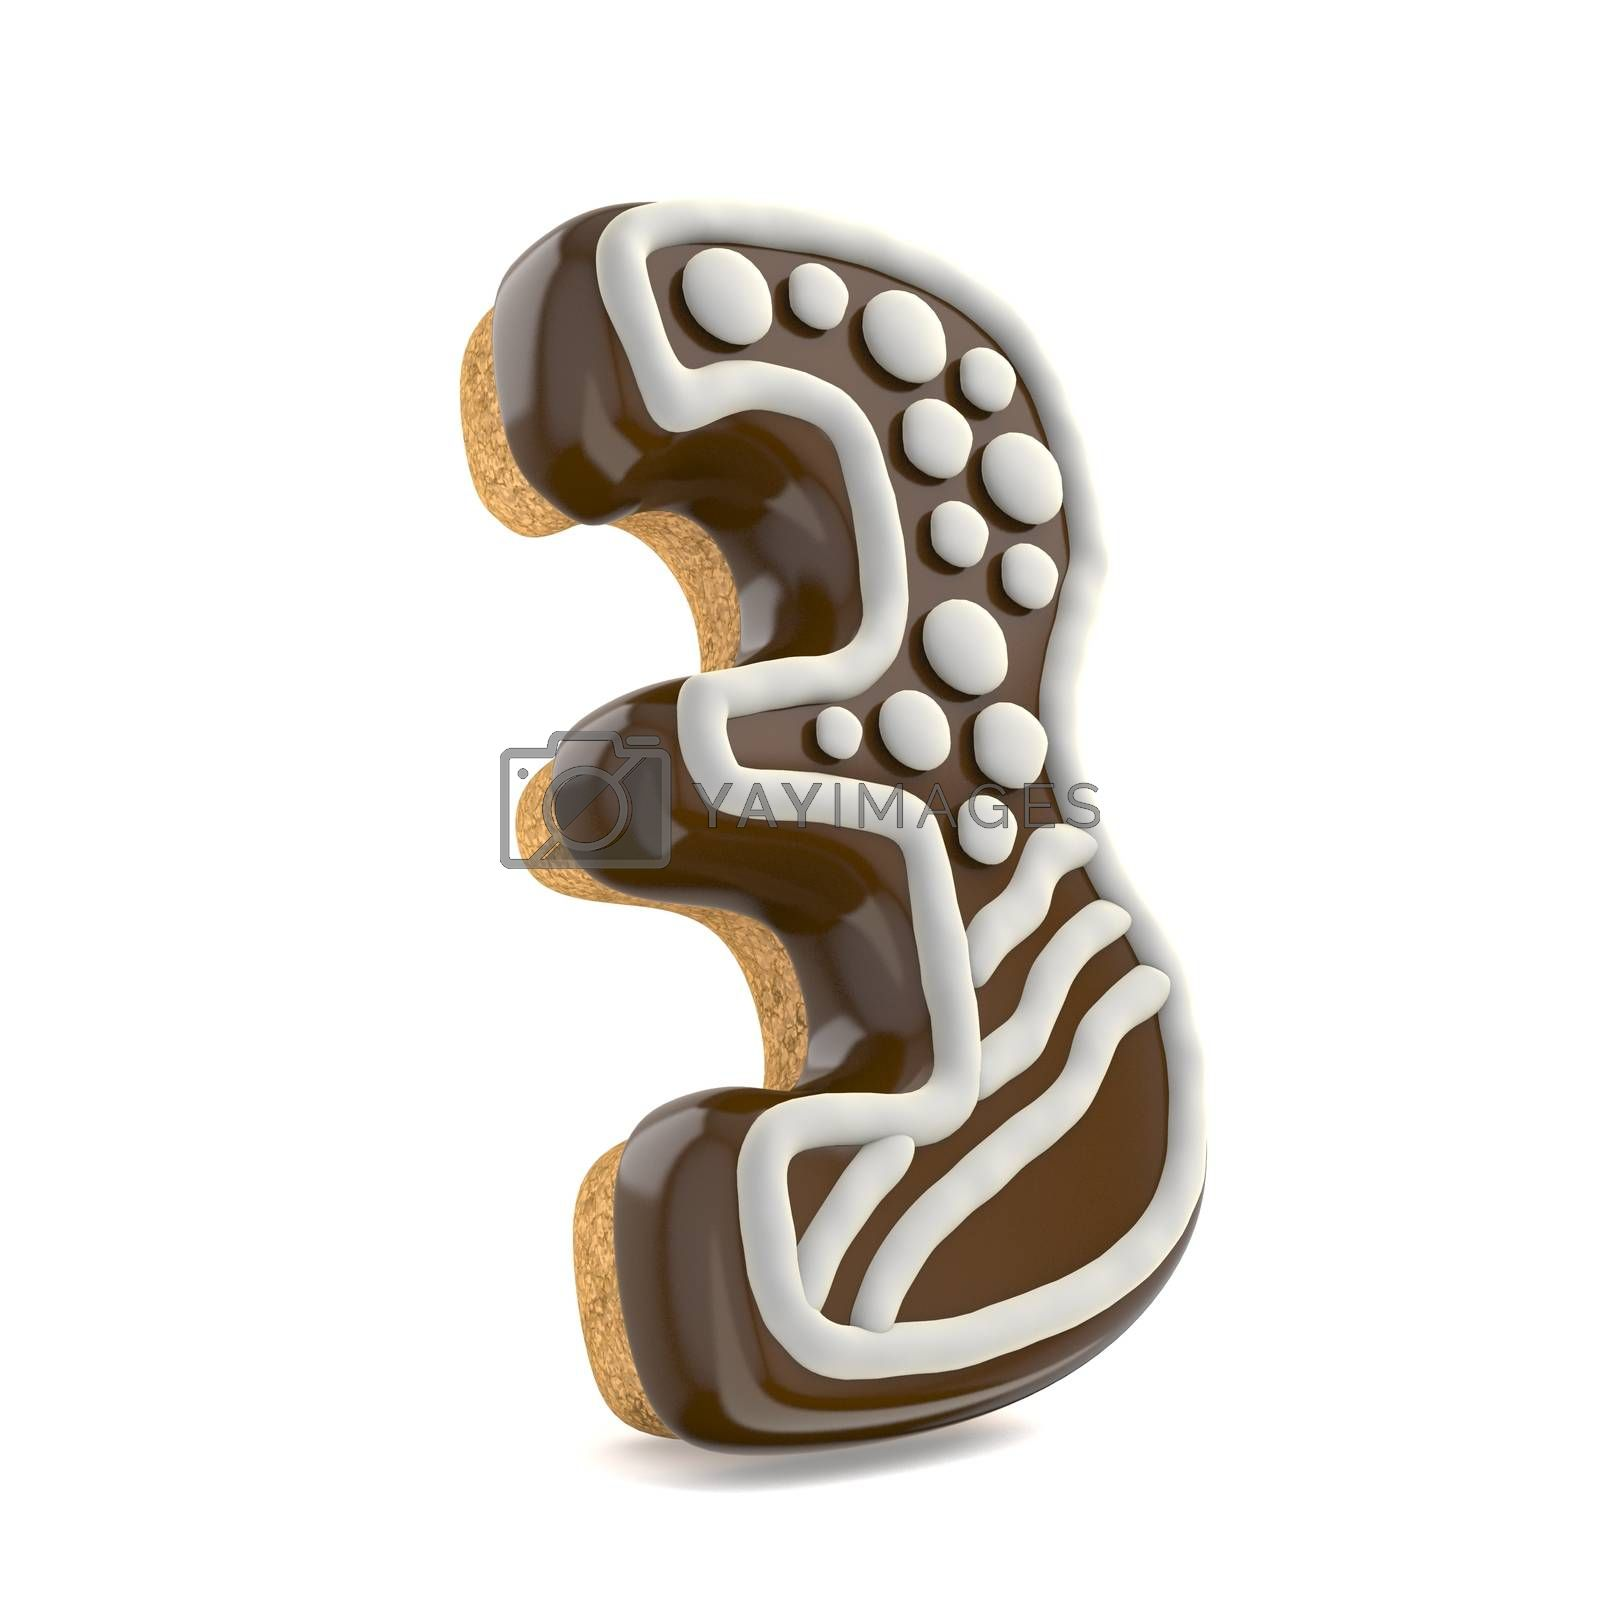 Number THREE 3 chocolate Christmas gingerbread font decorated wi by djmilic